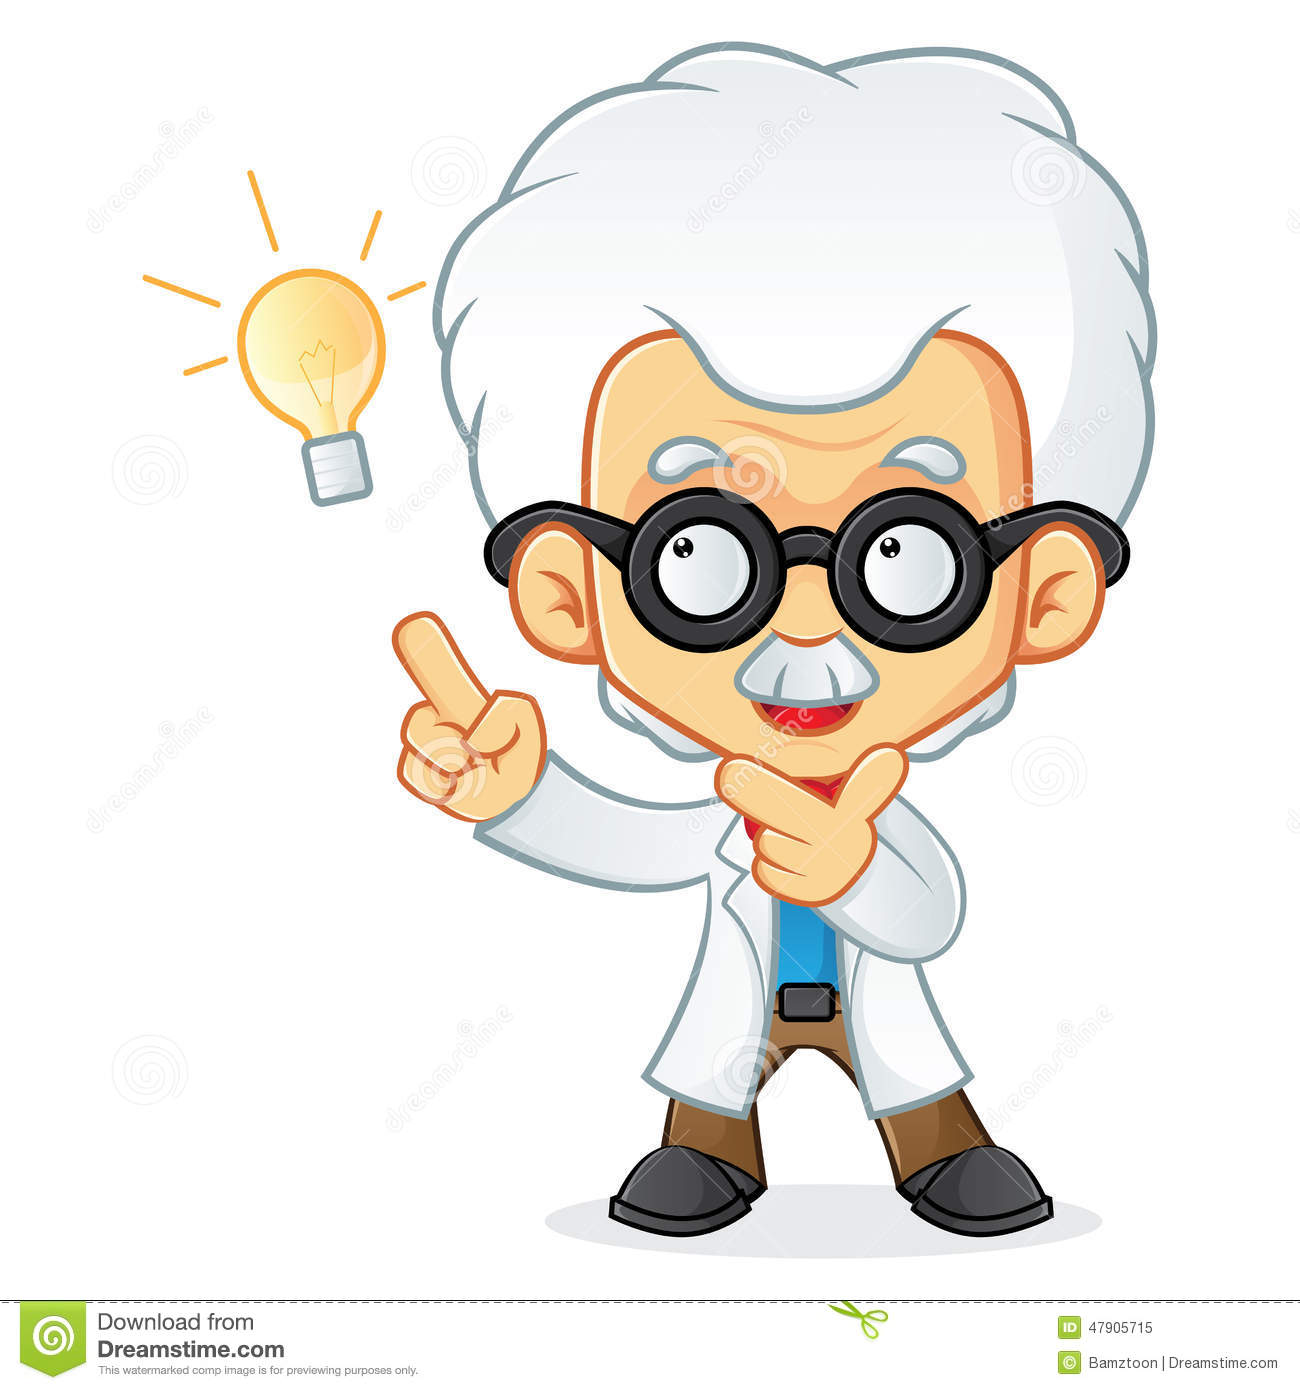 Professor Having Idea Stock Vector - Image: 47905715